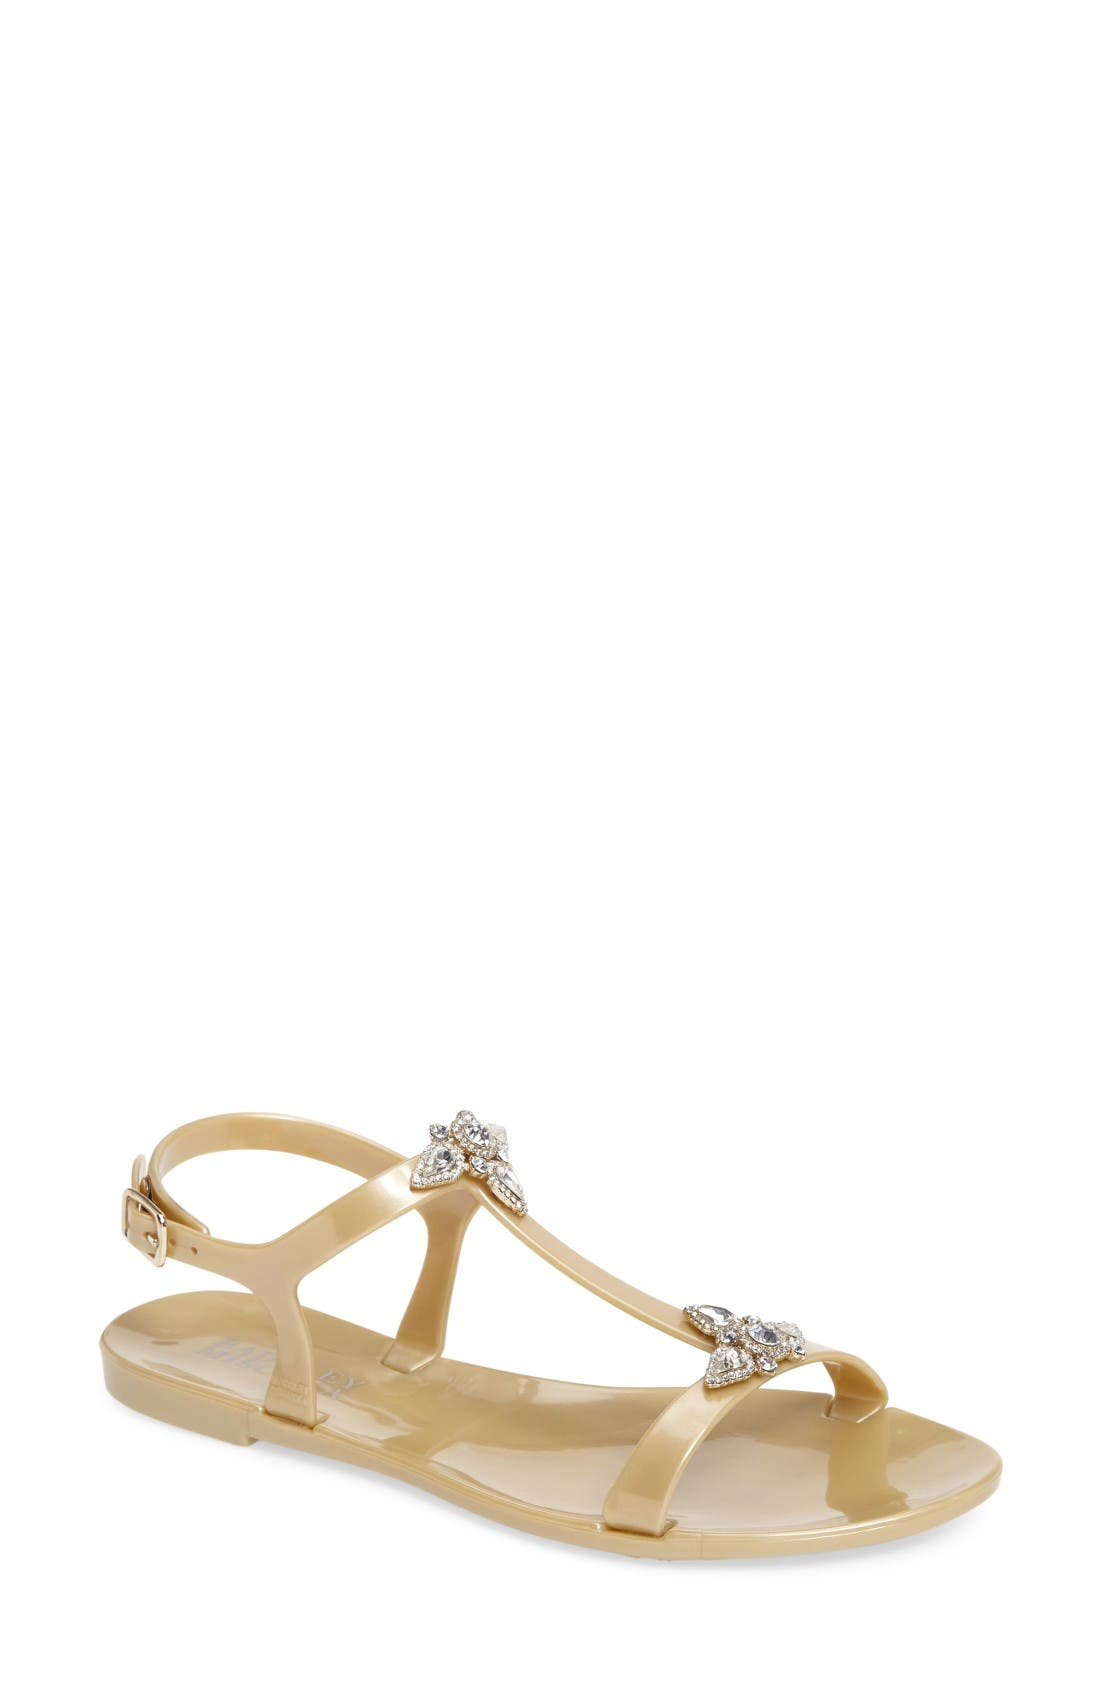 Badgley Mischka Belize Crystal Embellished Flat Sandal (Women)